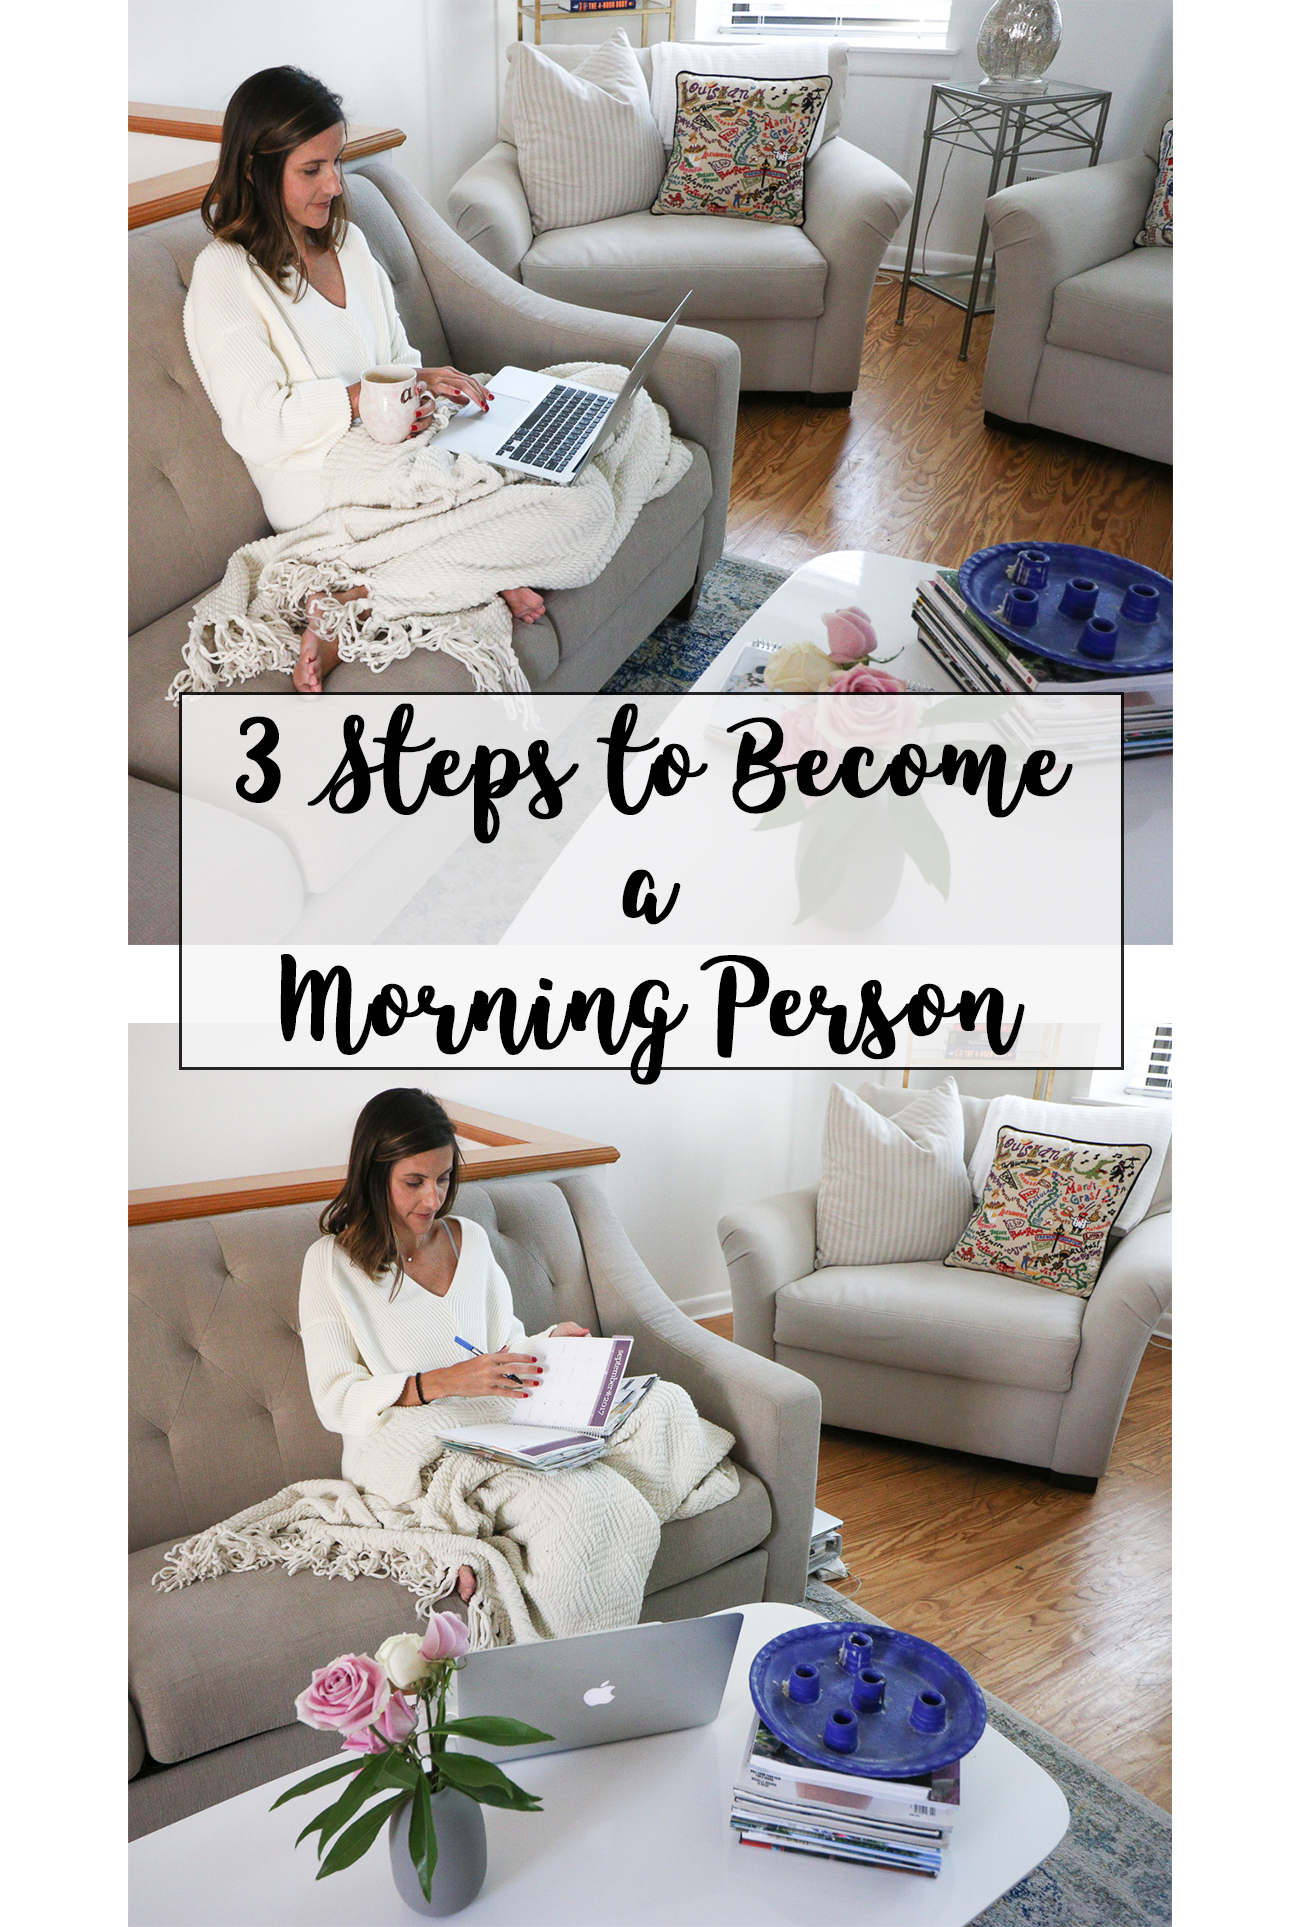 Steps to Become a Morning Person | My Morning Routine - 3 Steps to Become a Morning Person by popular Washington DC lifestyle blogger Cobalt Chronicles